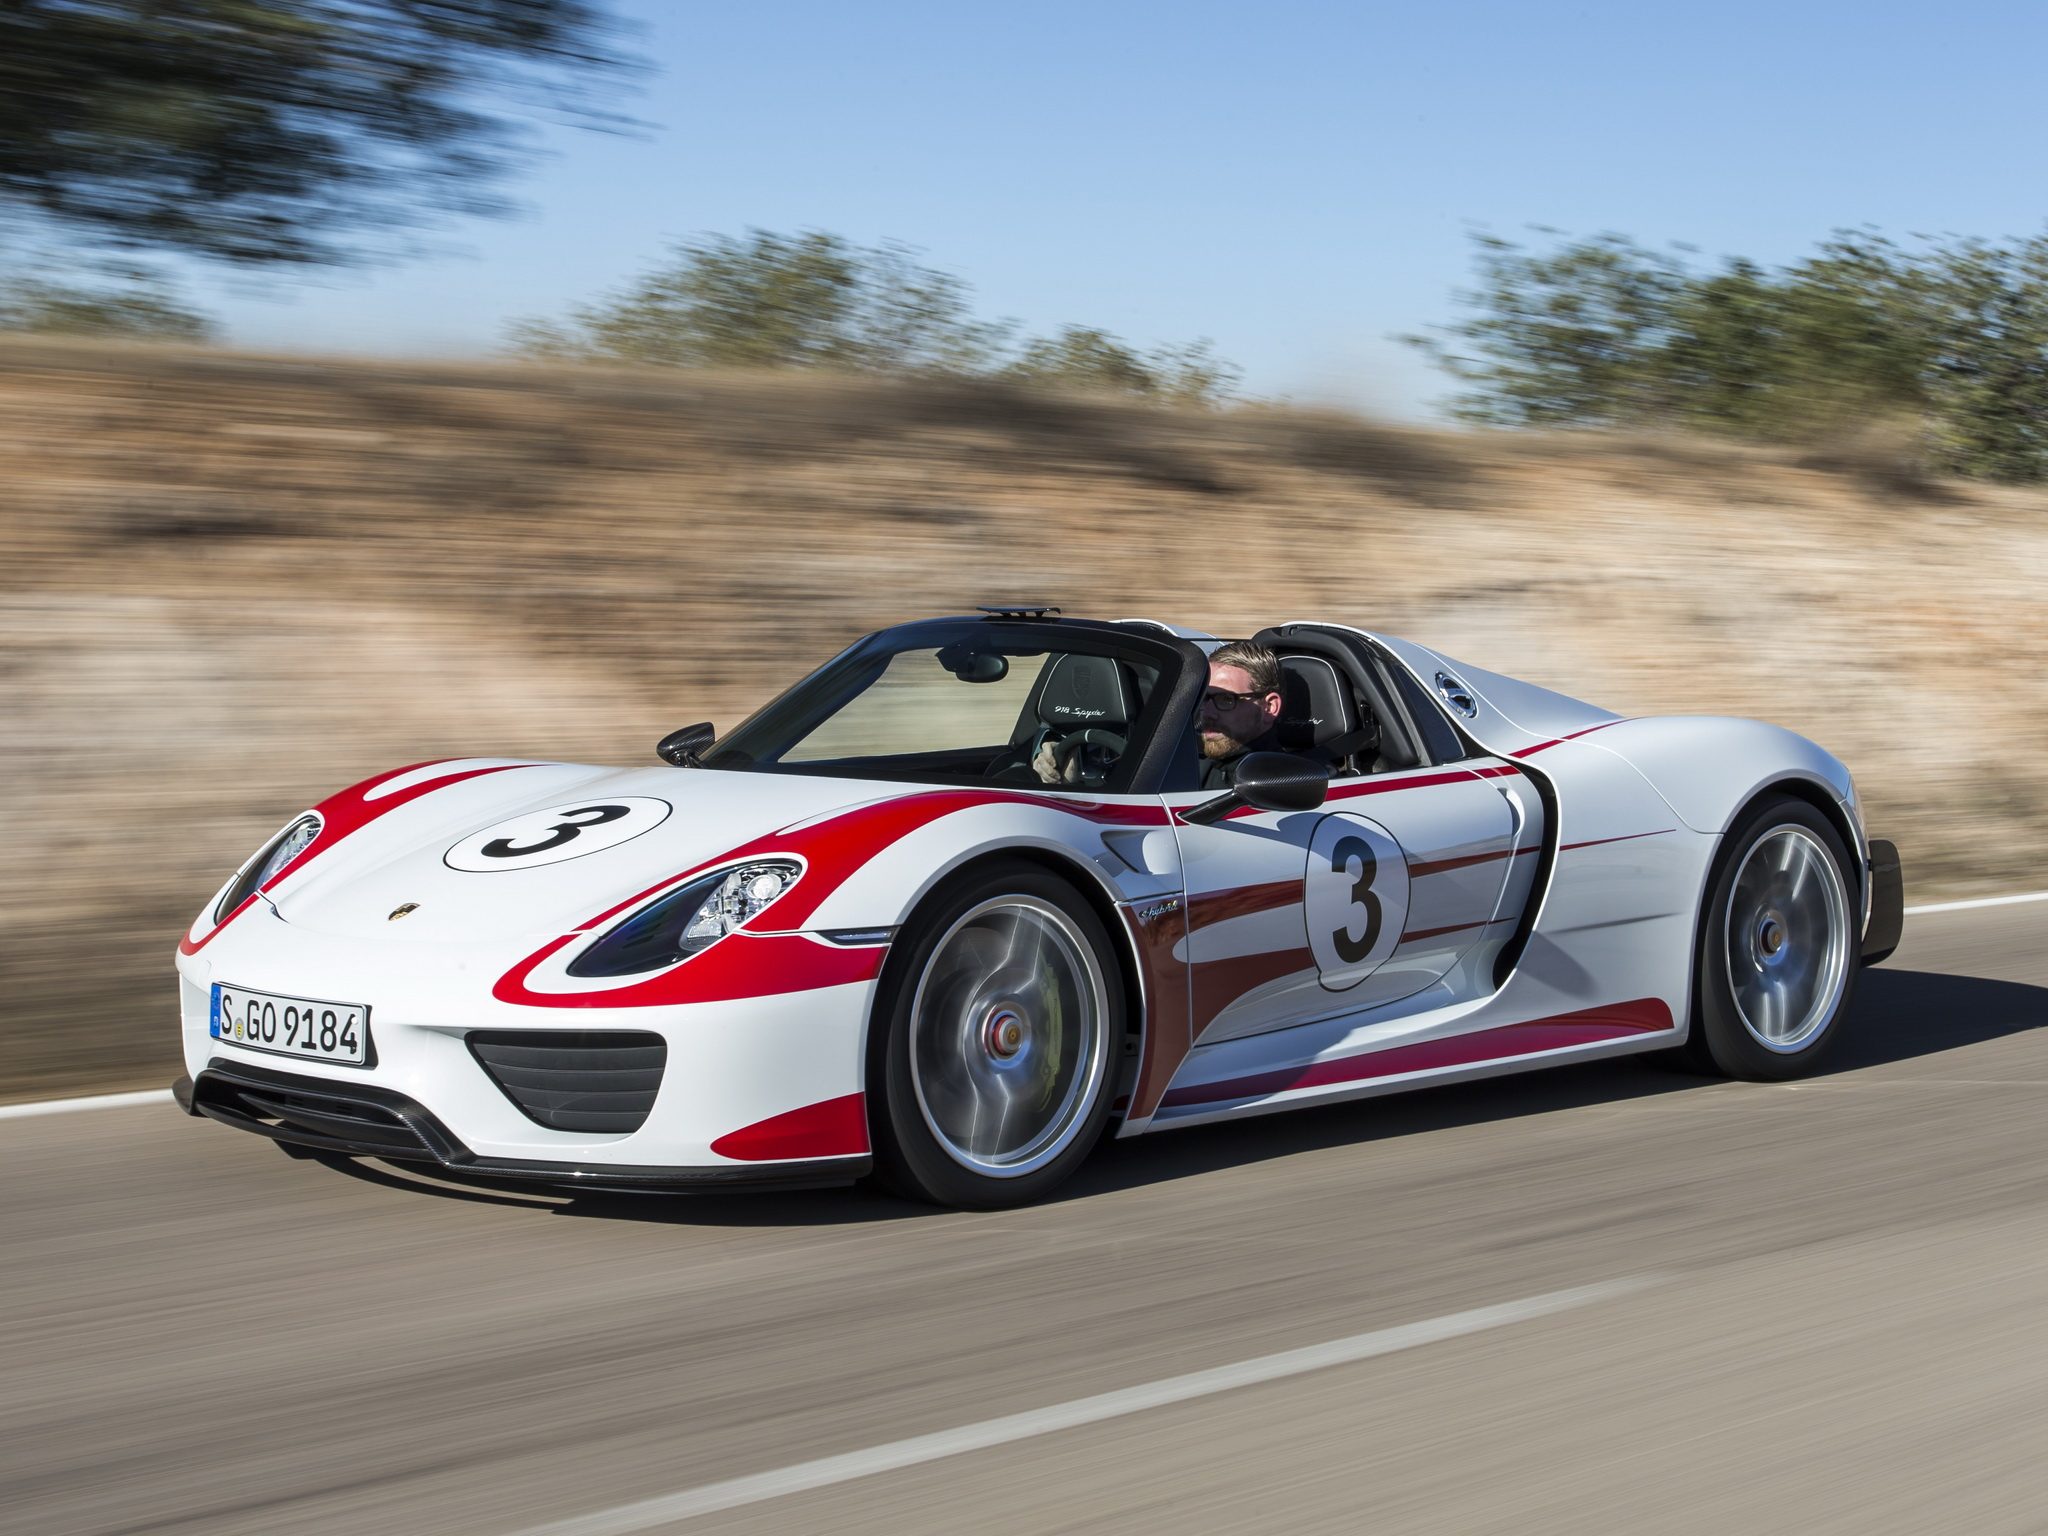 2014 porsche 918 spyder weissach race racing supercar g wallpaper 2048x1536. Black Bedroom Furniture Sets. Home Design Ideas